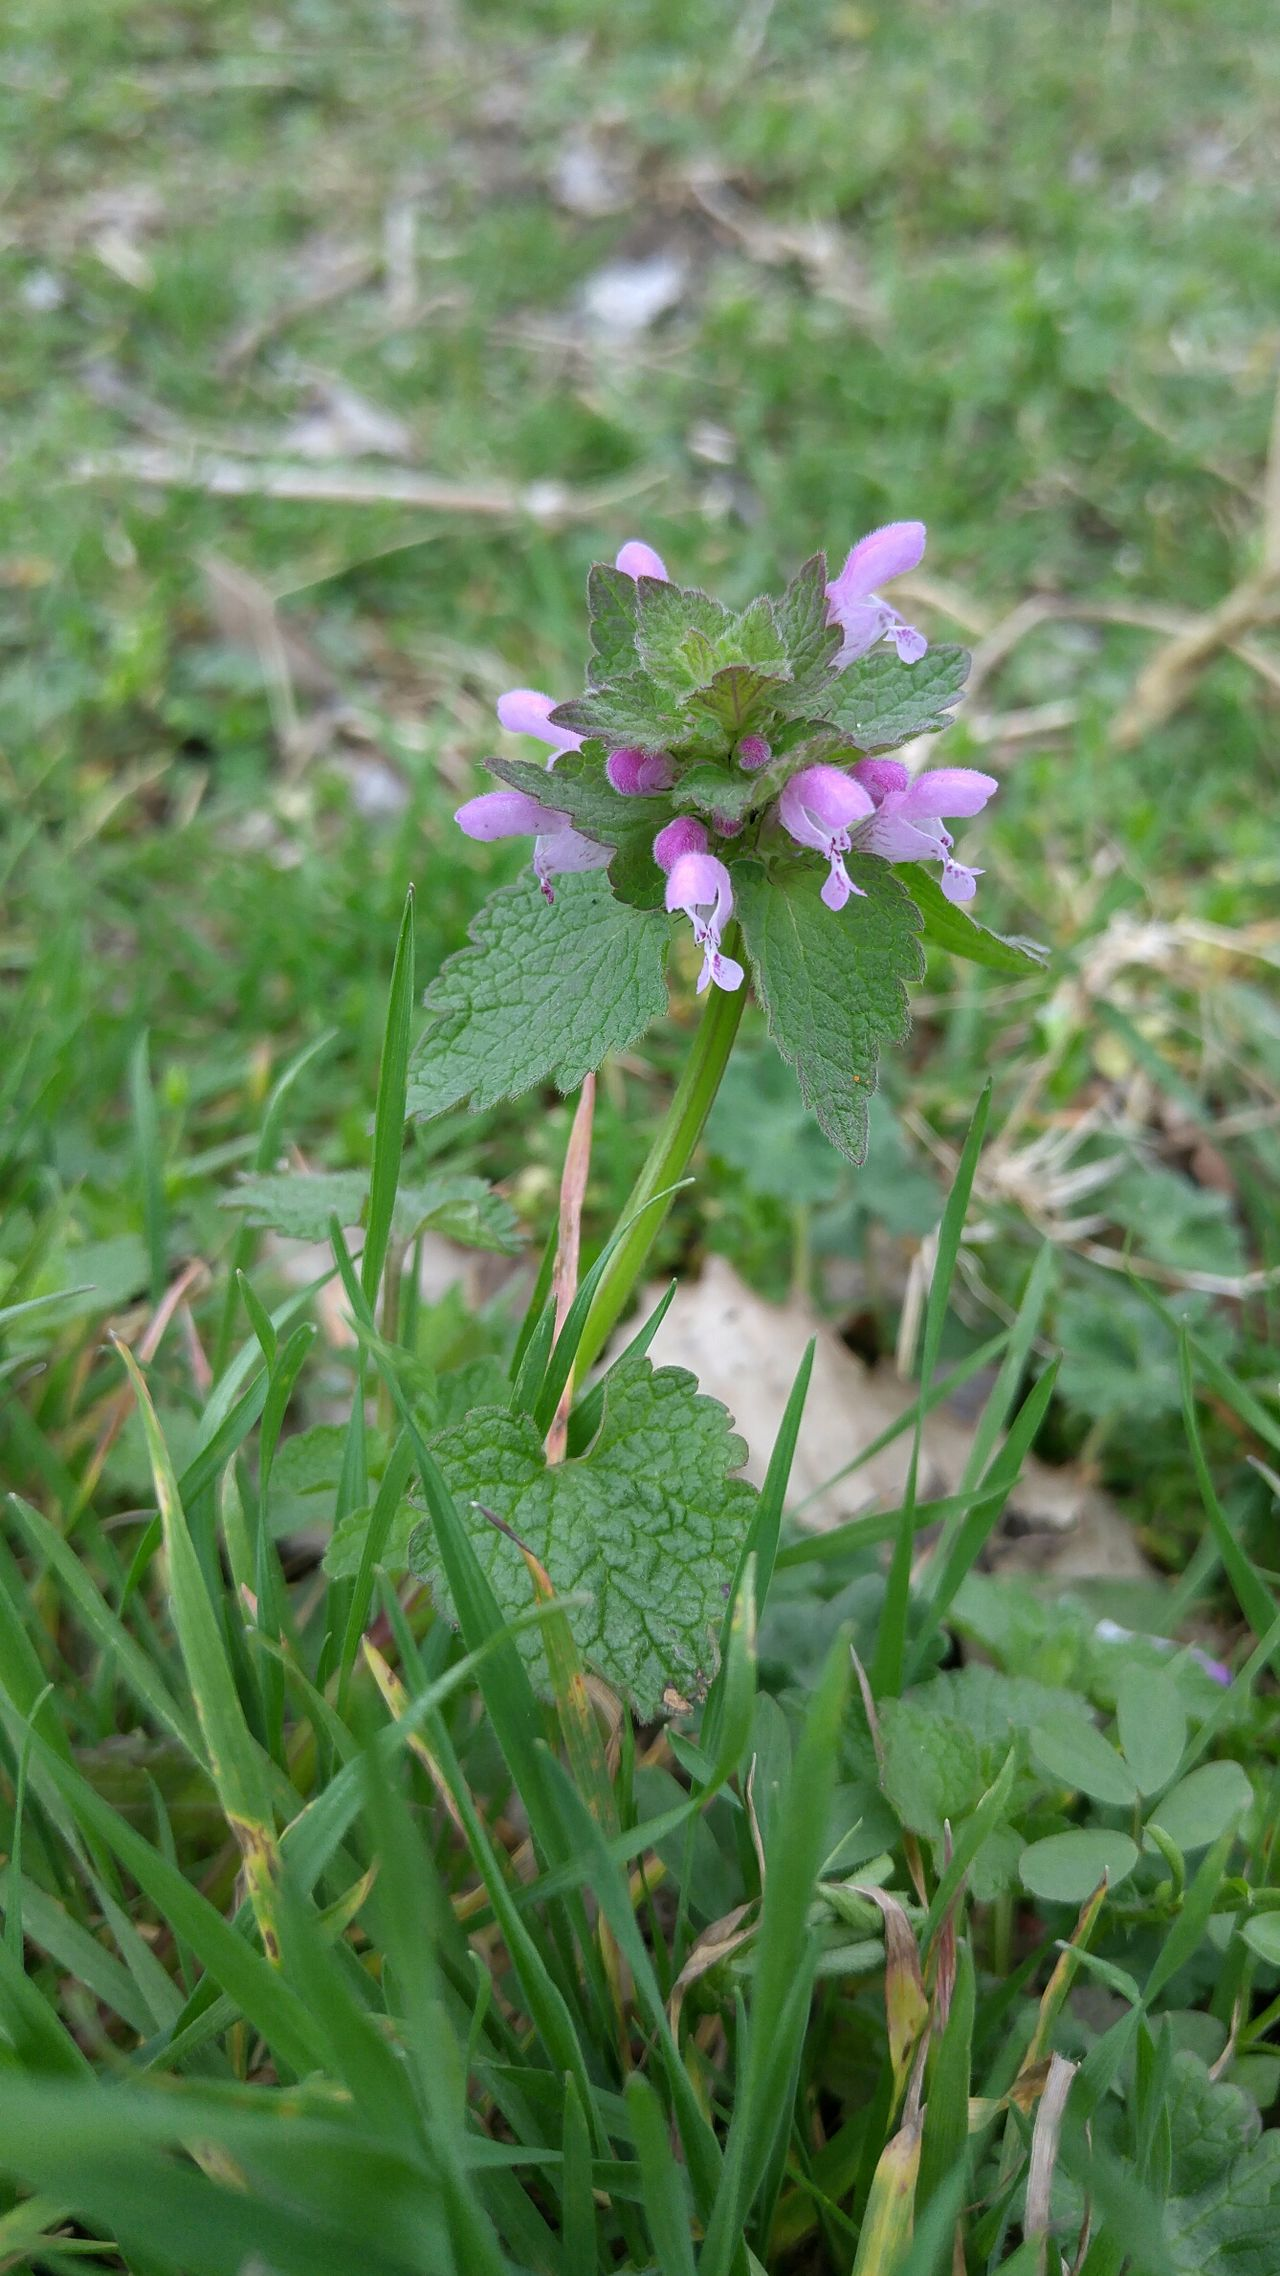 Garden Flower Purple Green Spring New Life Springtime Weeds Are Beautiful Too Grass Fwjphotos Nature Outdoors Nature Photography Lgg4photography LGG4 Hiking Plant